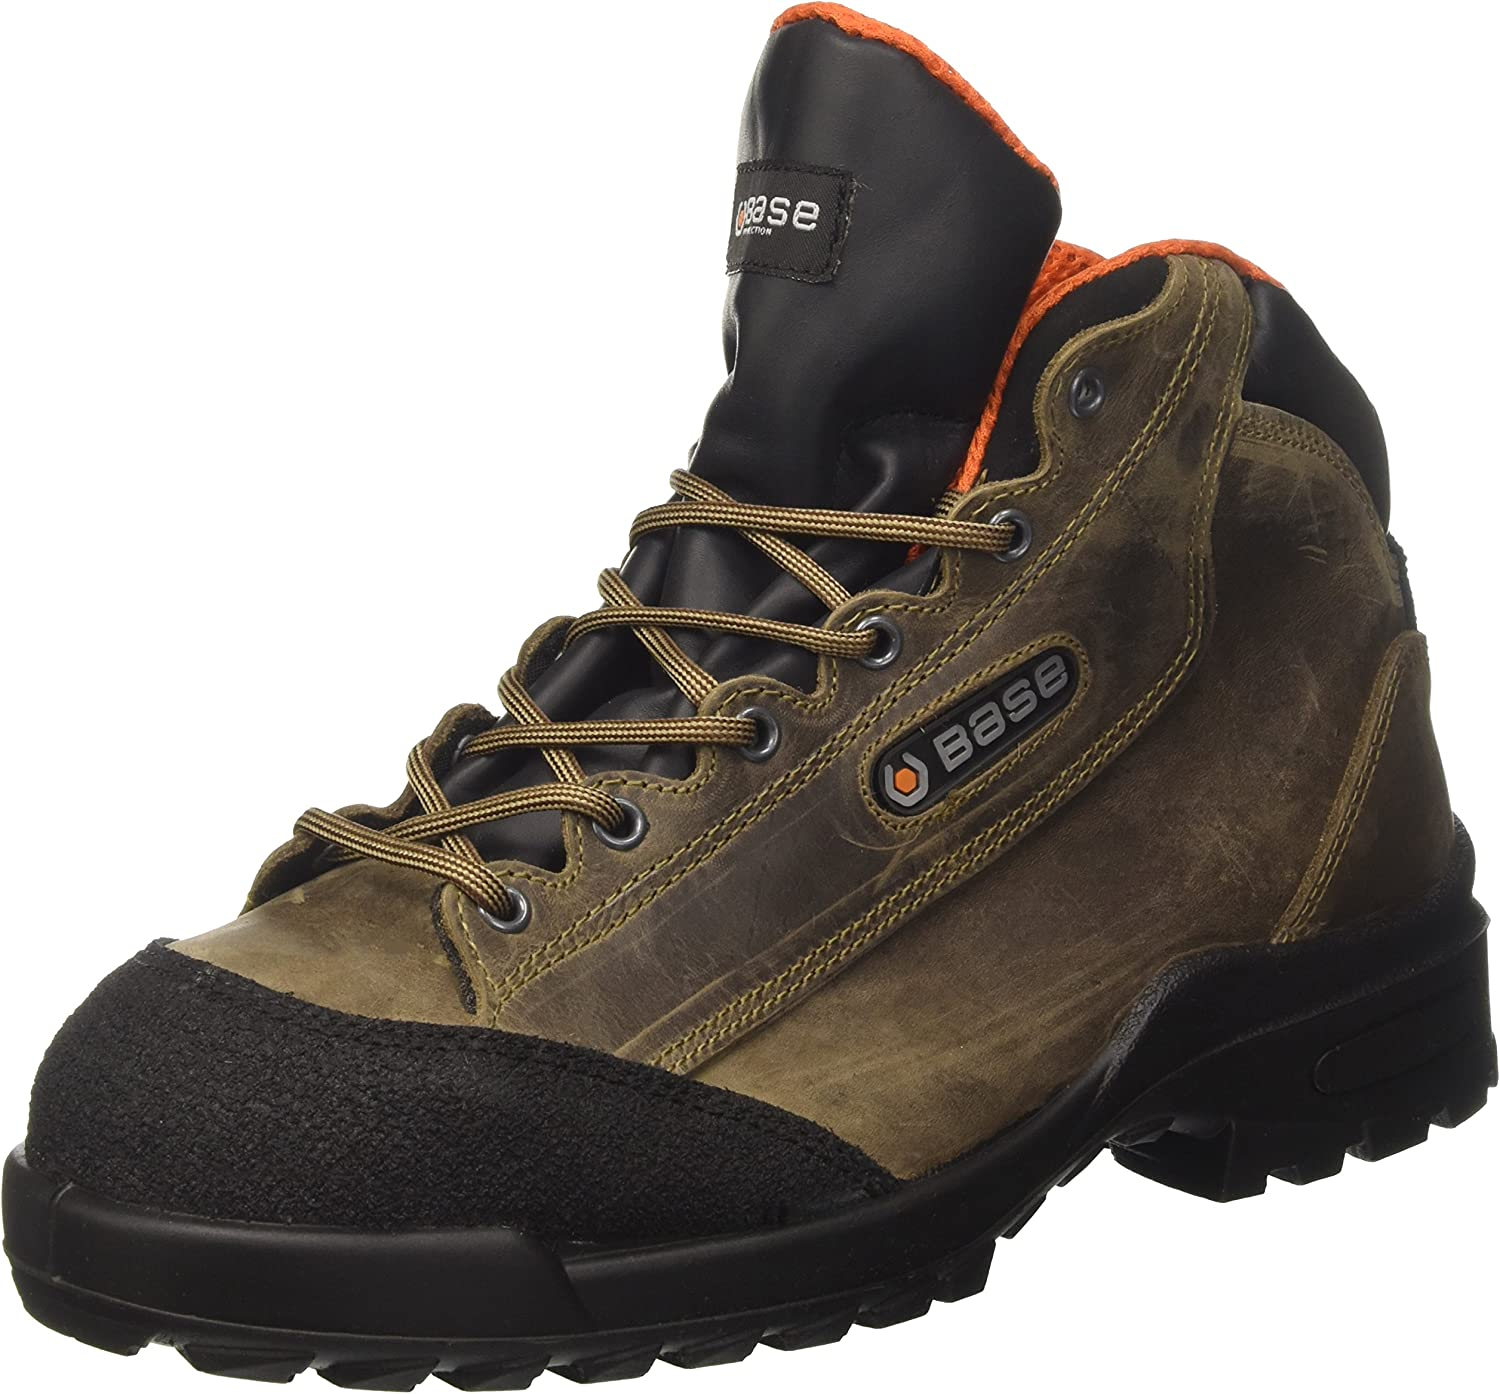 Base BO186 Geldorf S3 SRC Classic Mens Nonslip Laced Safety Boot